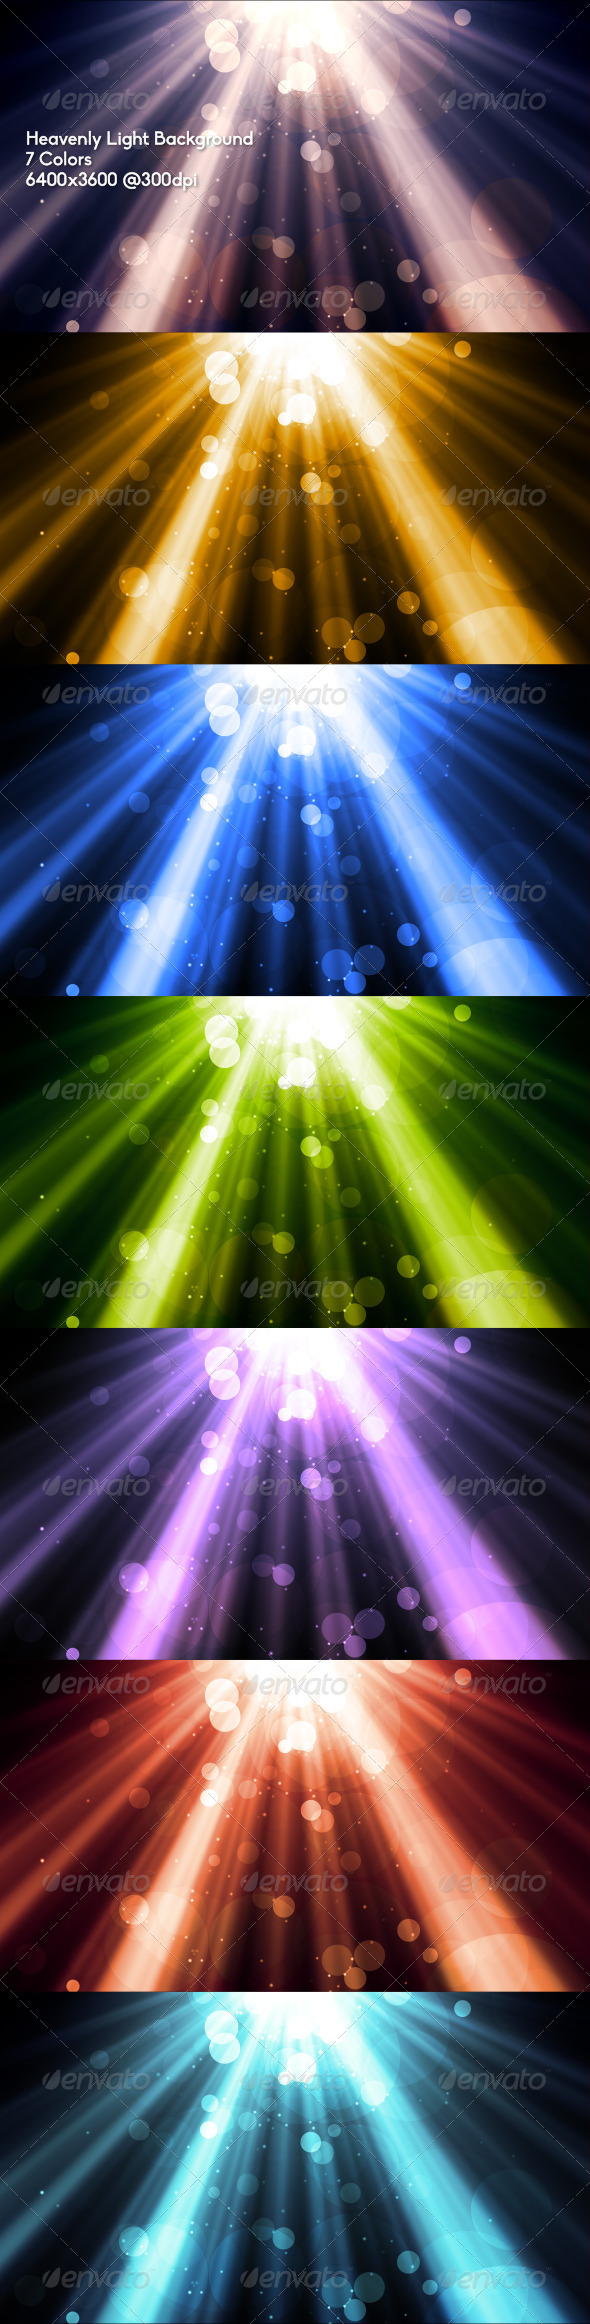 Heavenly Light Background - Abstract Backgrounds